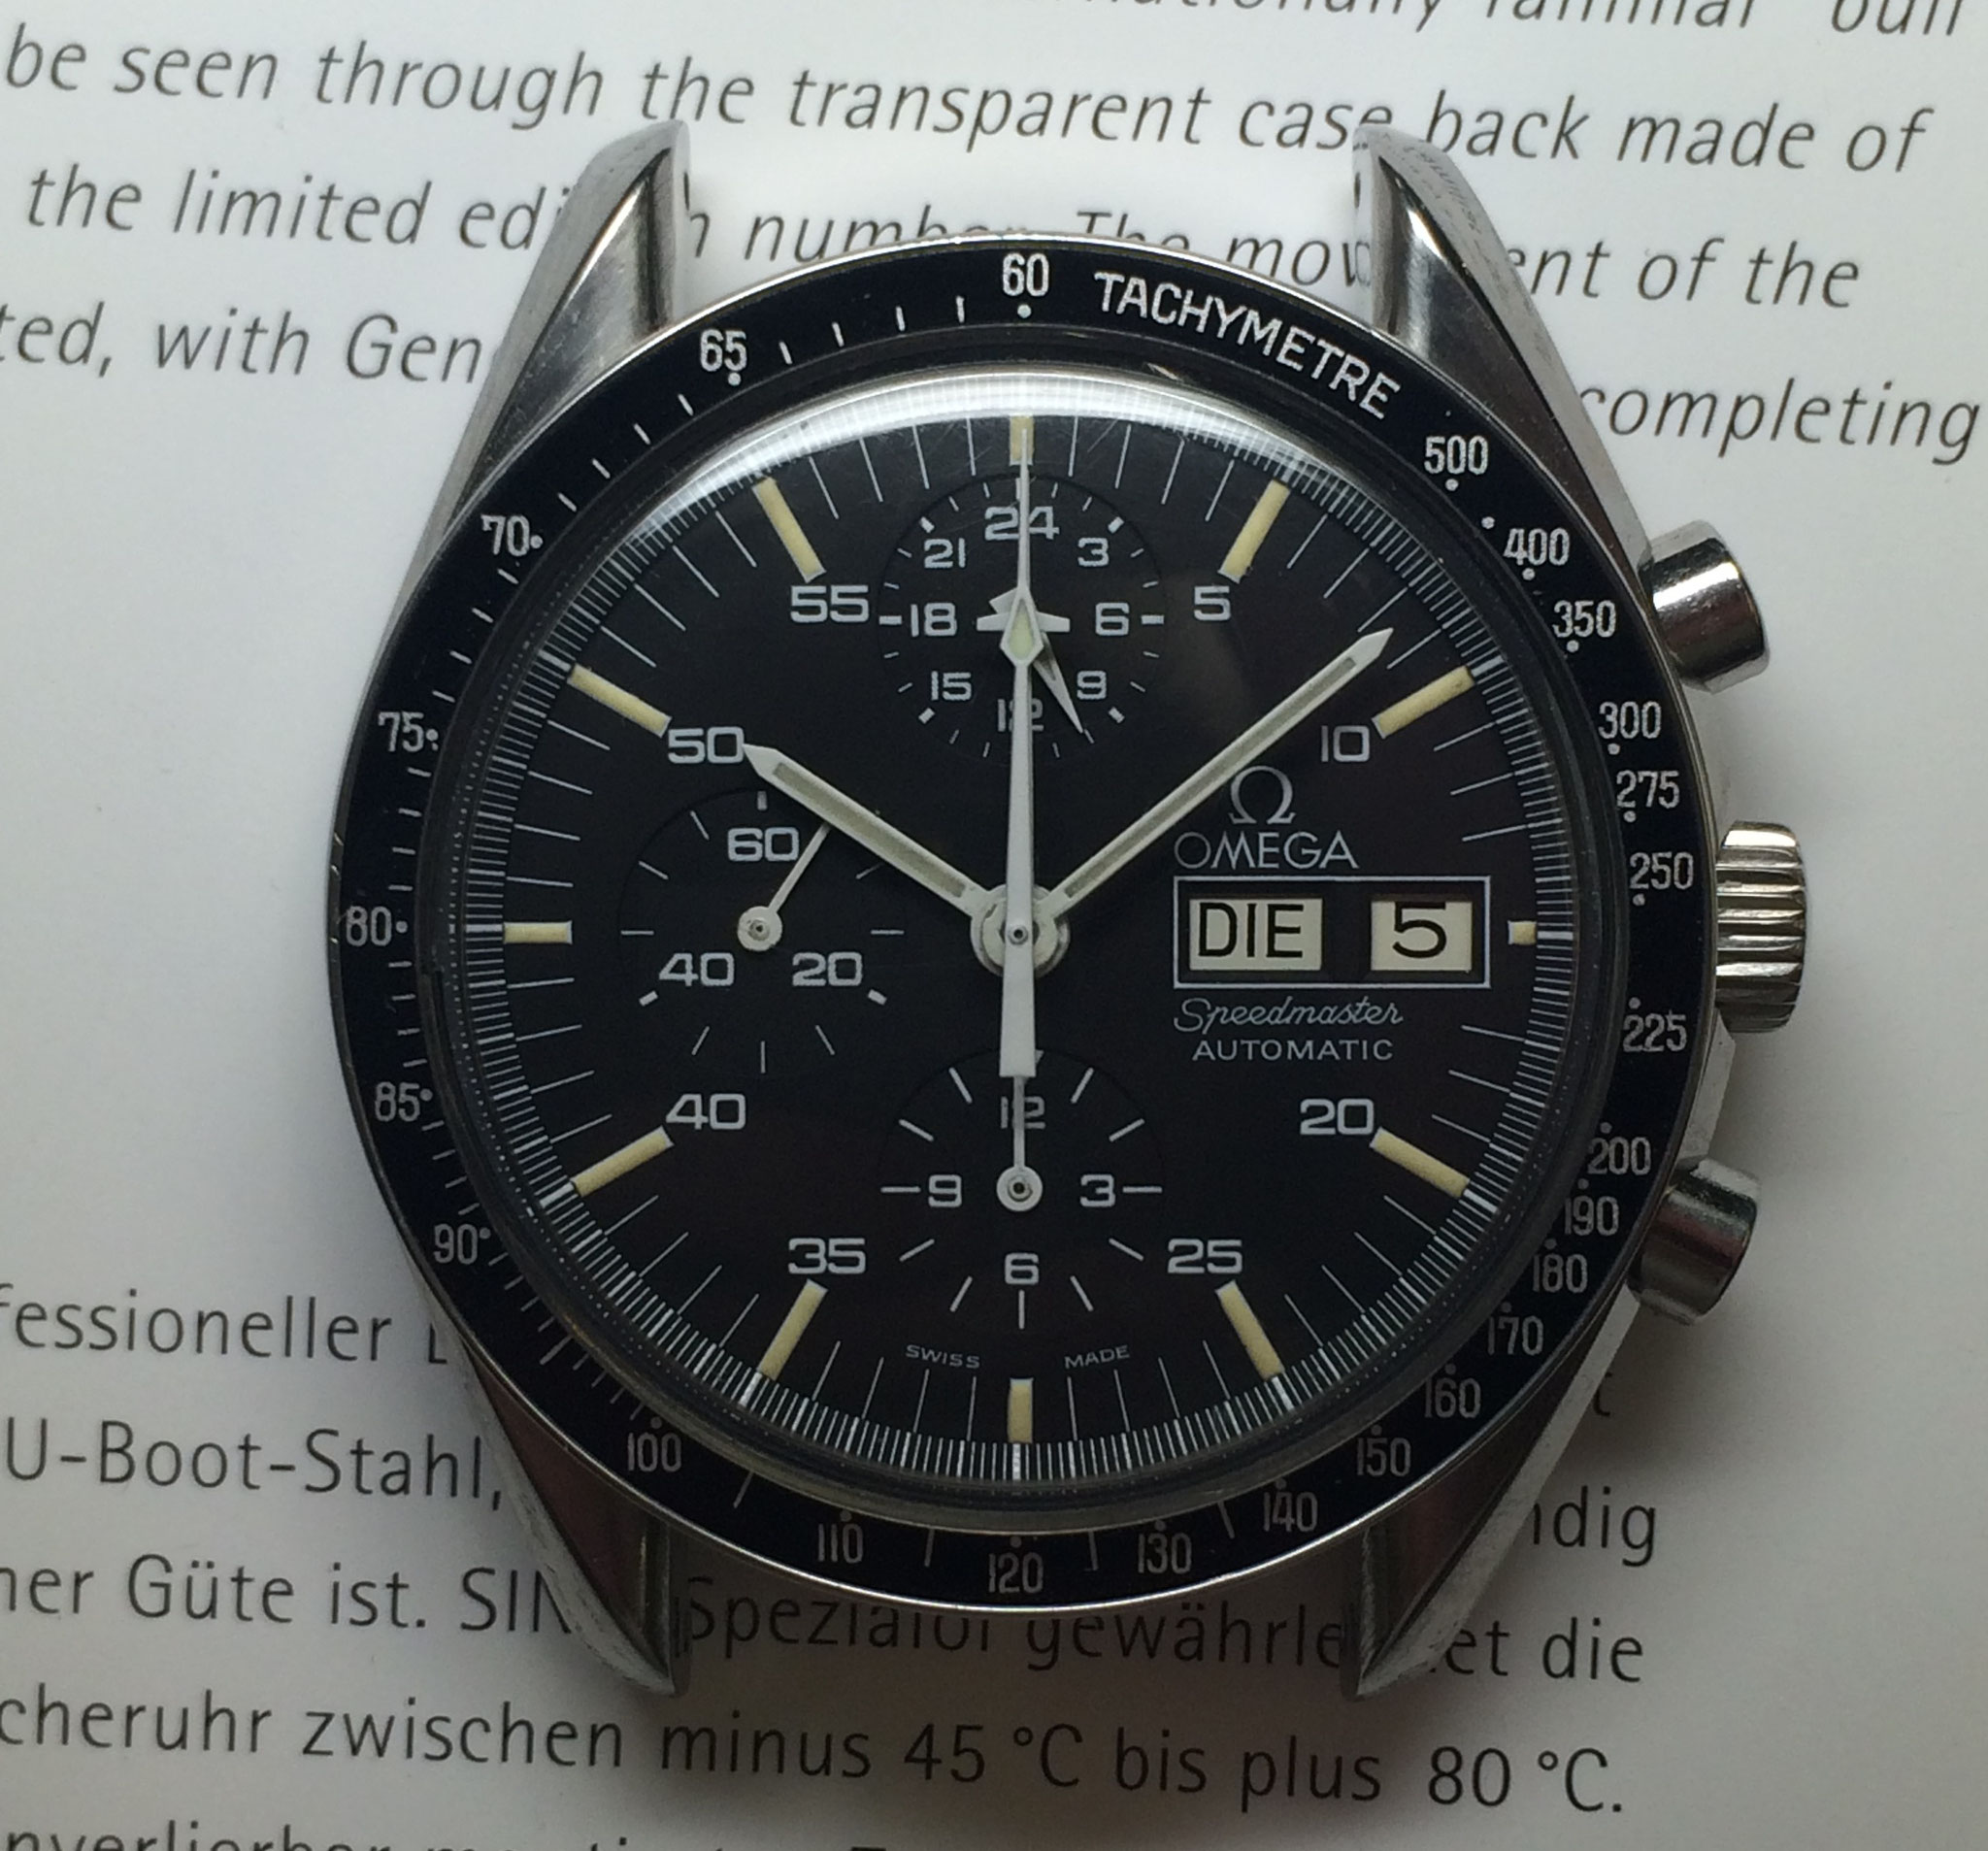 Omega Speedmaster Chronograph Ref. 376.0822 sogenannte Holy Grail mit Lemania 5100